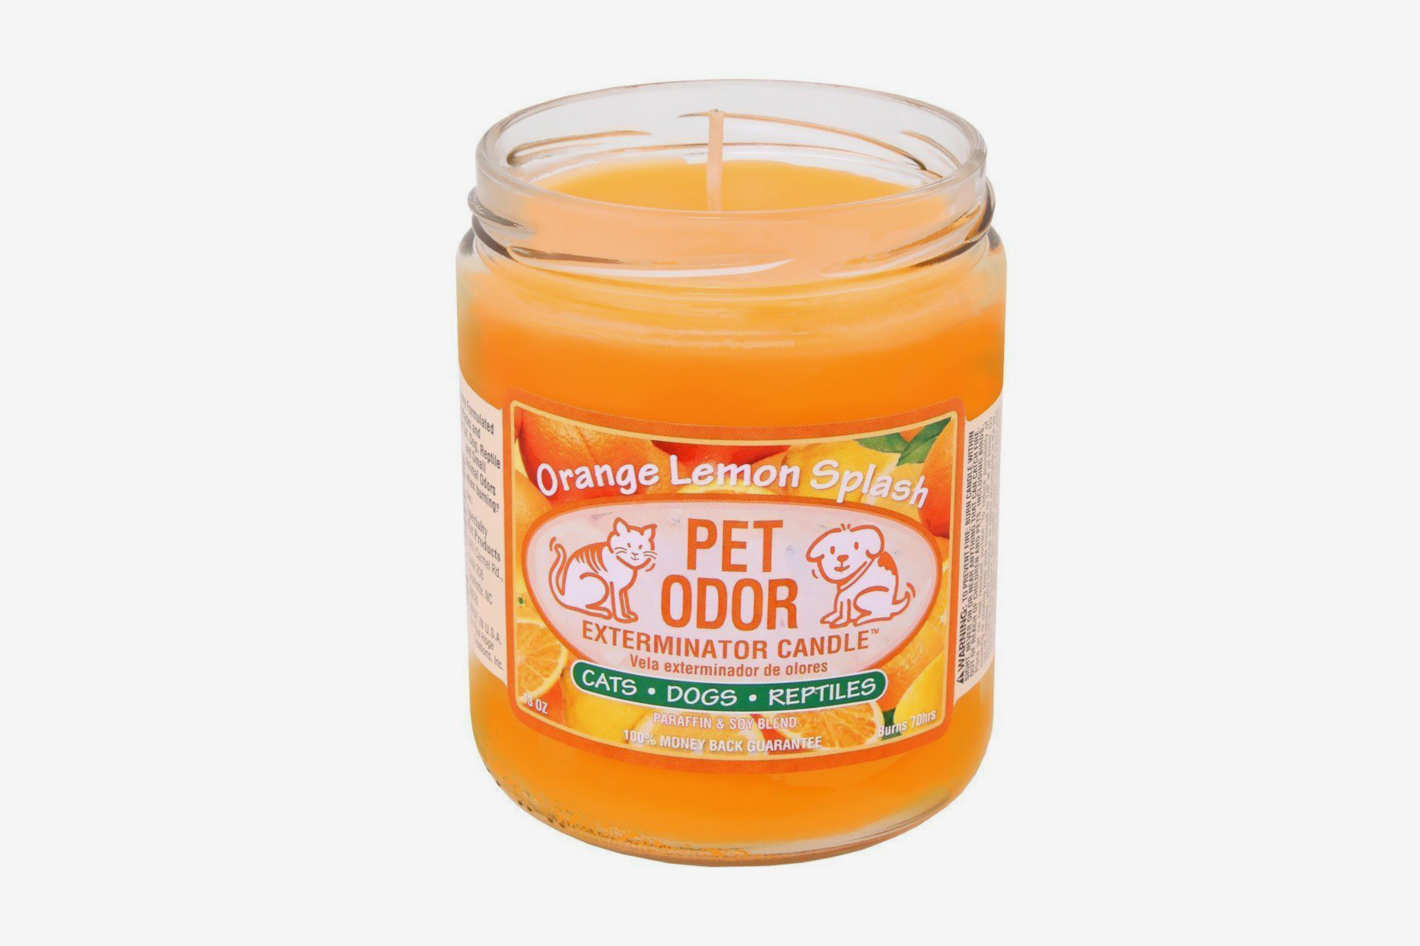 Pet Odor Exterminator Candle, Orange Lemon Splash, 13 oz